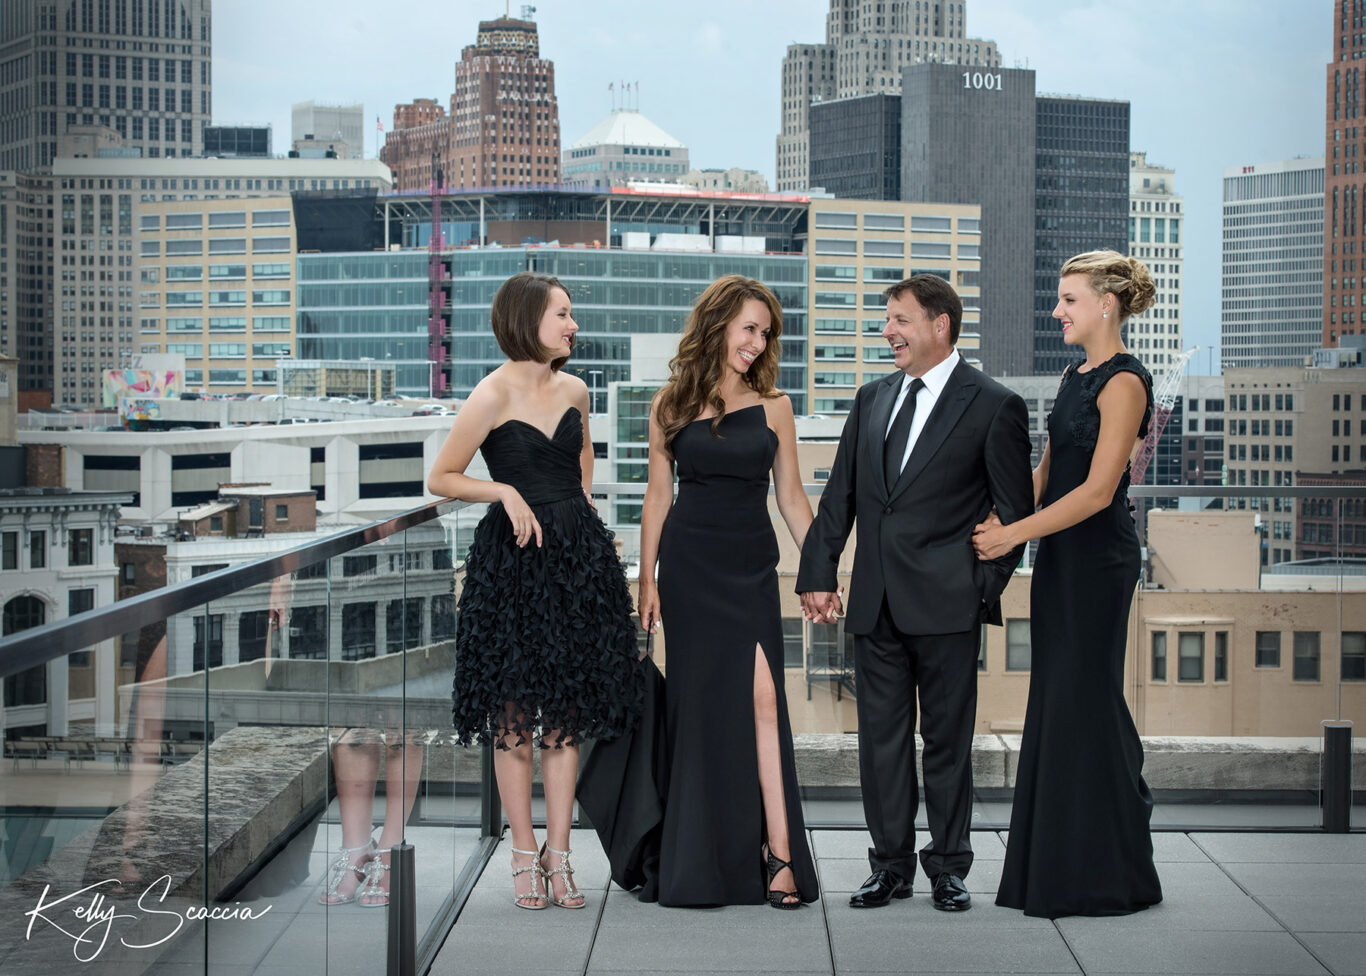 Family of four dressed formal on top of a skyscraper in a city landscape looking at one another smiling